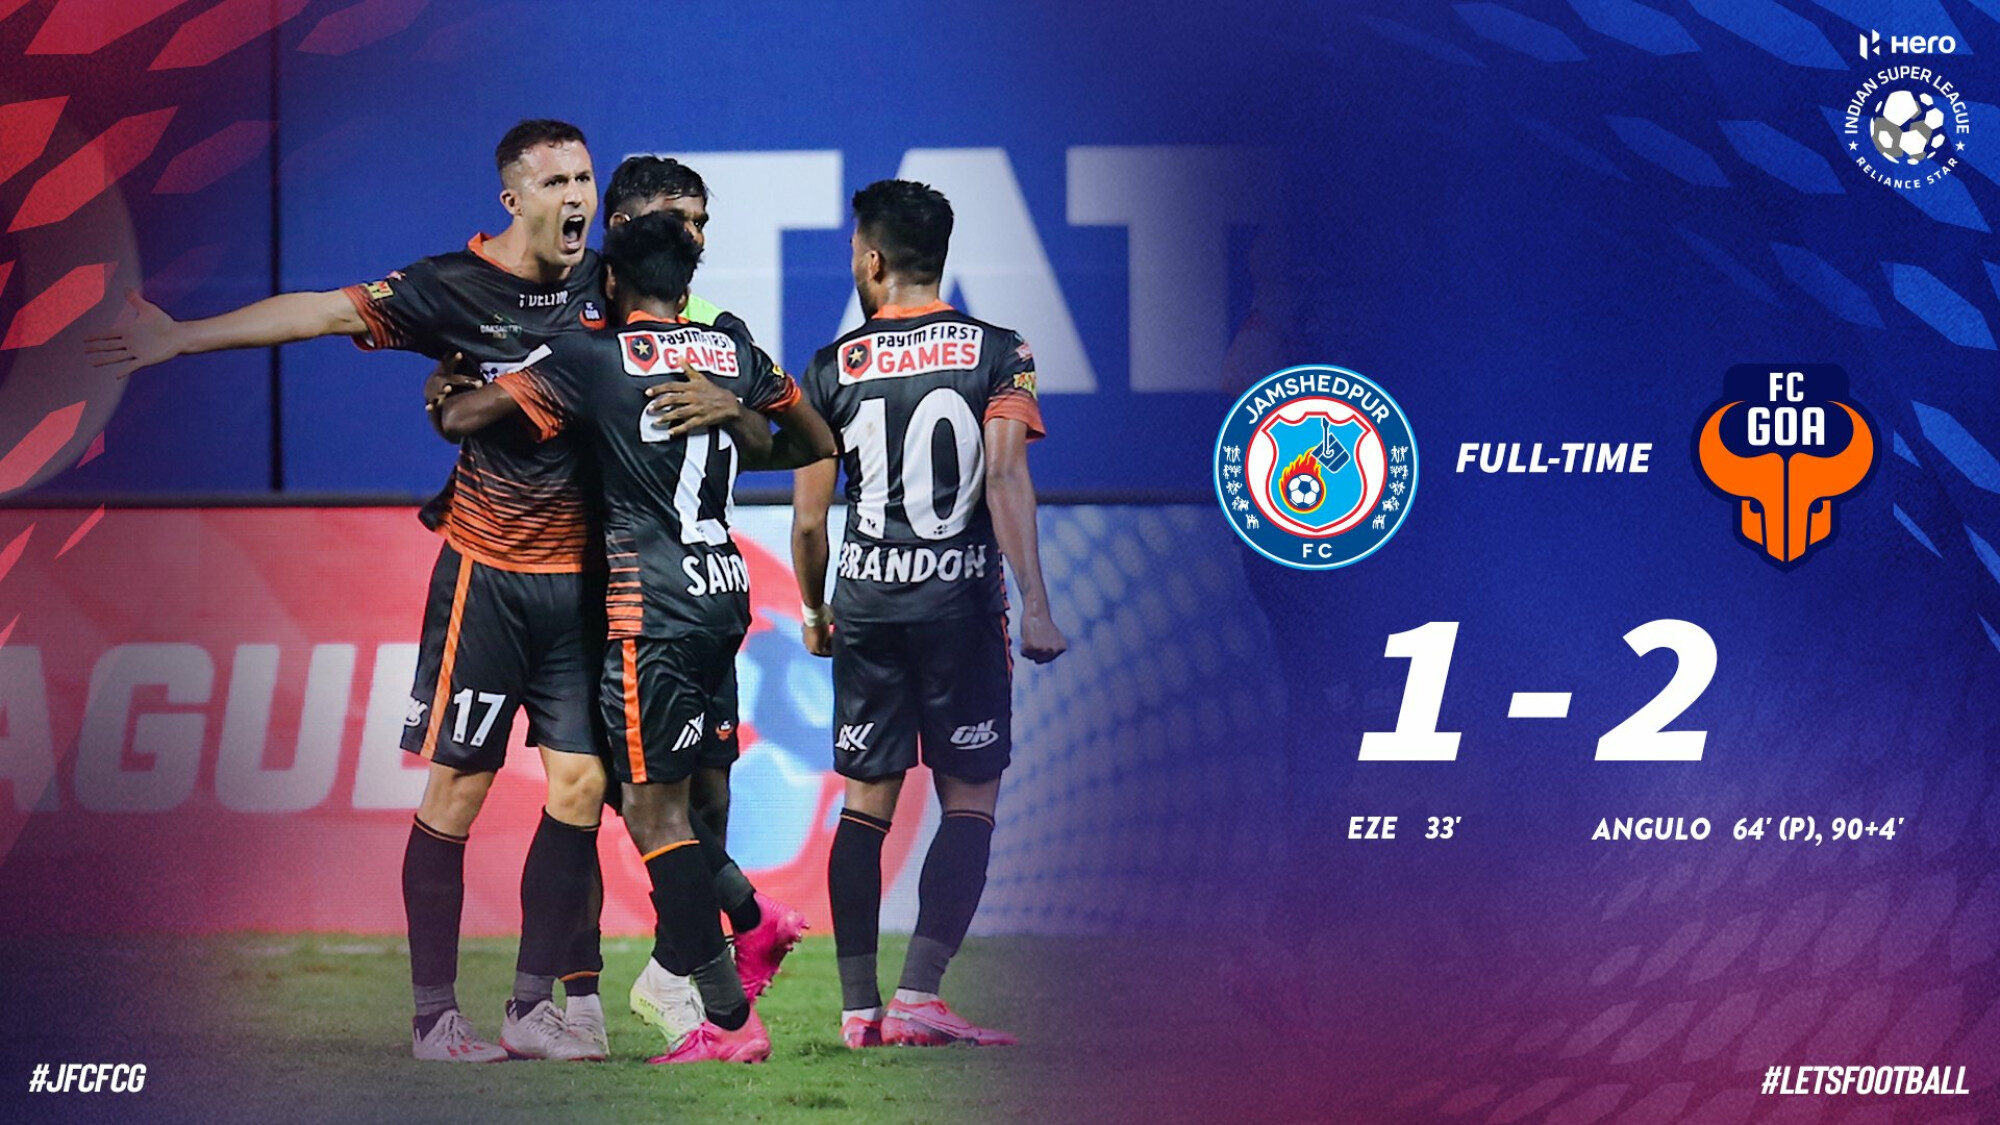 ISL 2020-21 FC Goa vs Jamshedpur FC: FC Goa earn win through late Angulo winner